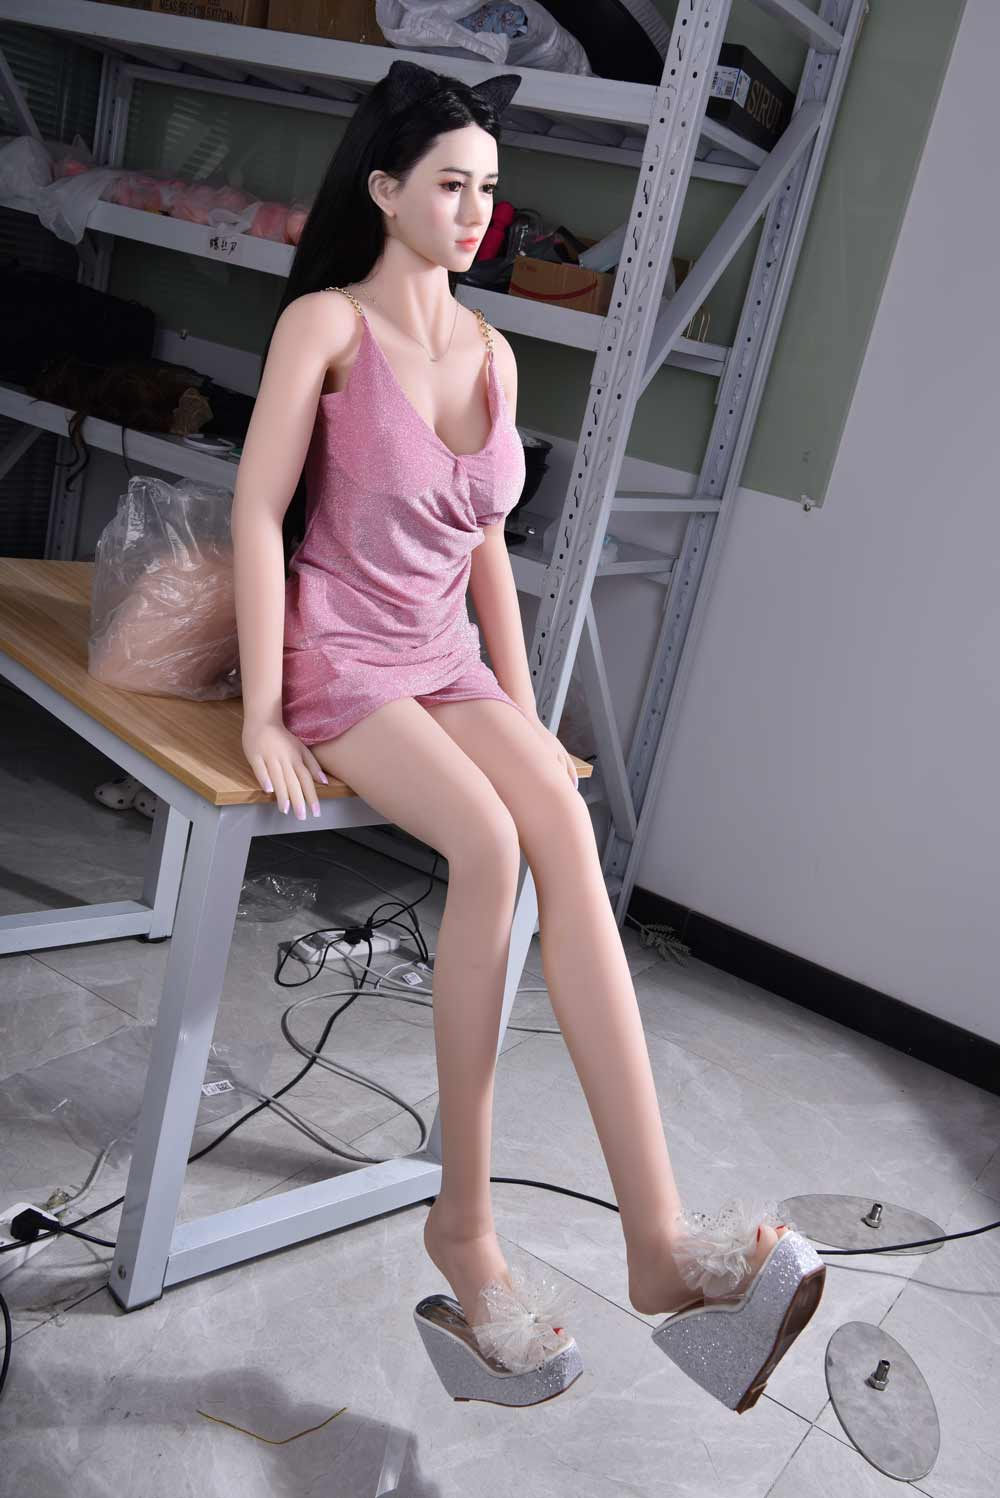 Silicone sex doll sitting on the table